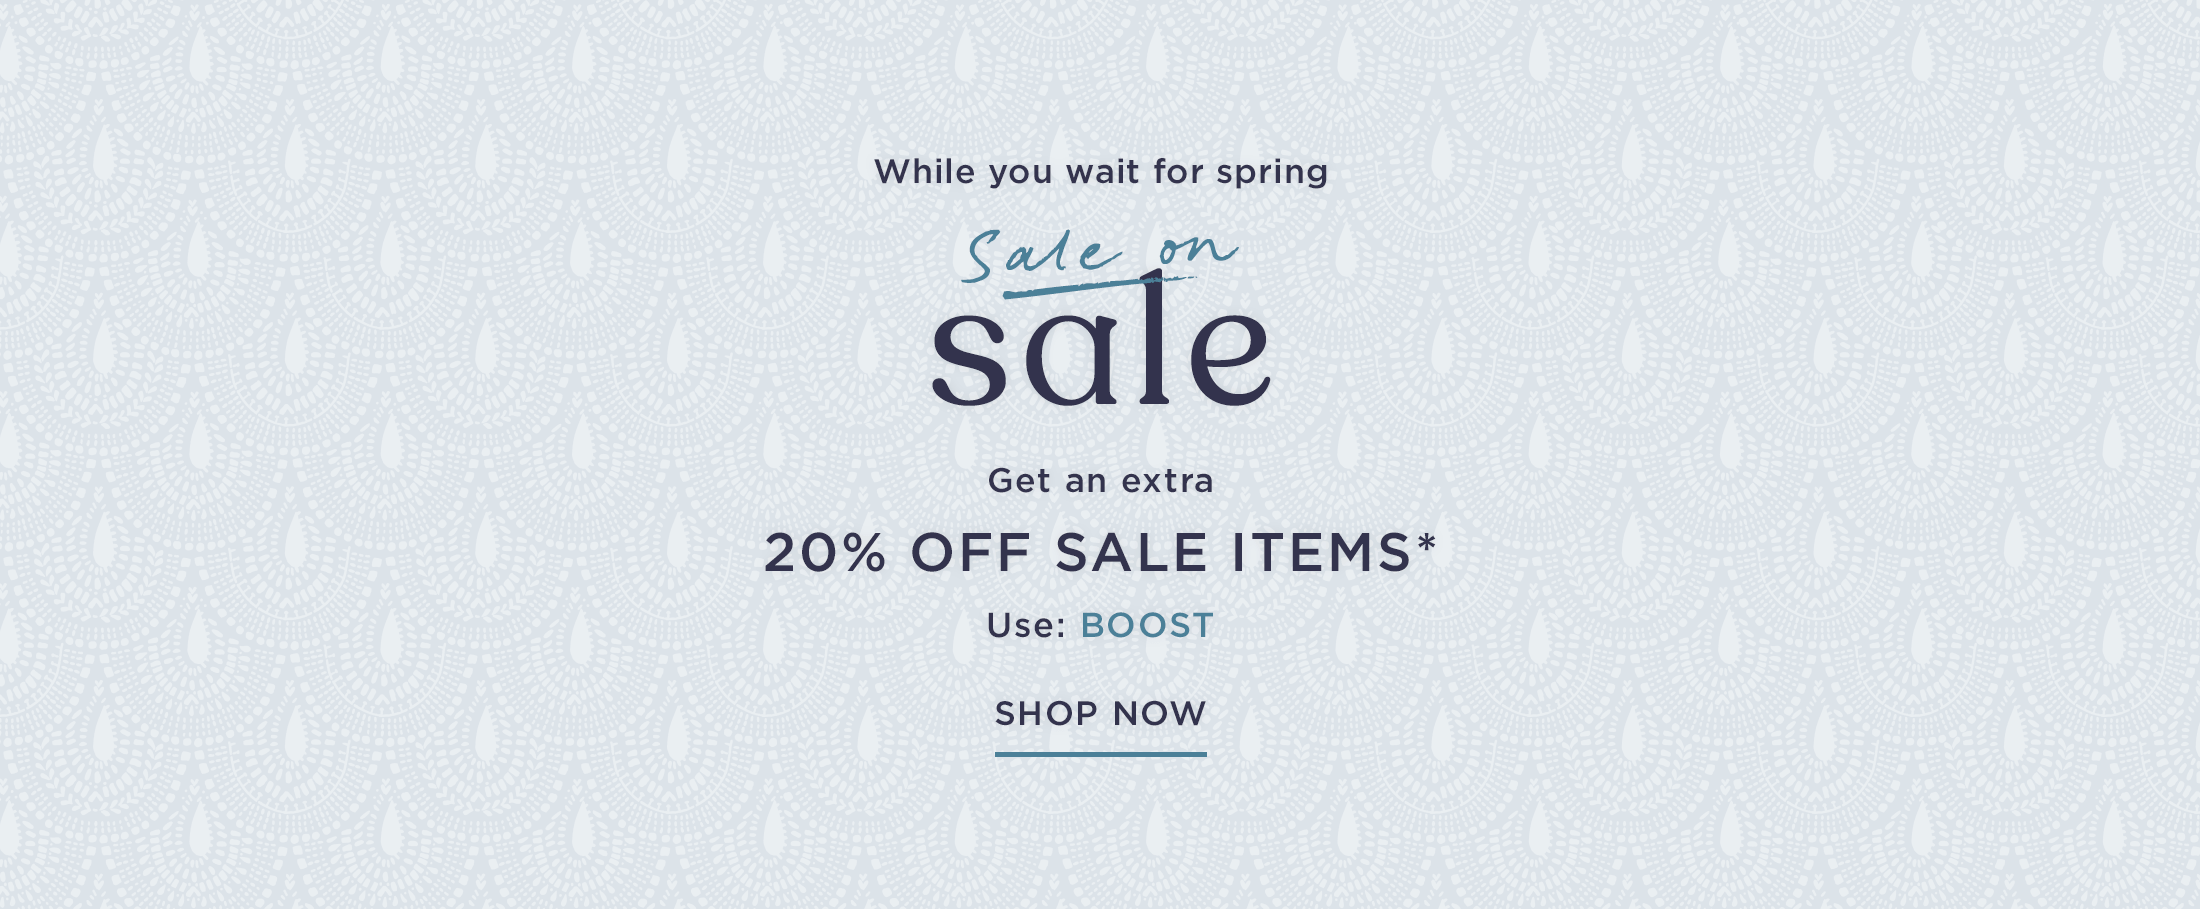 Get an extra 20% off sale items* use code BOOST